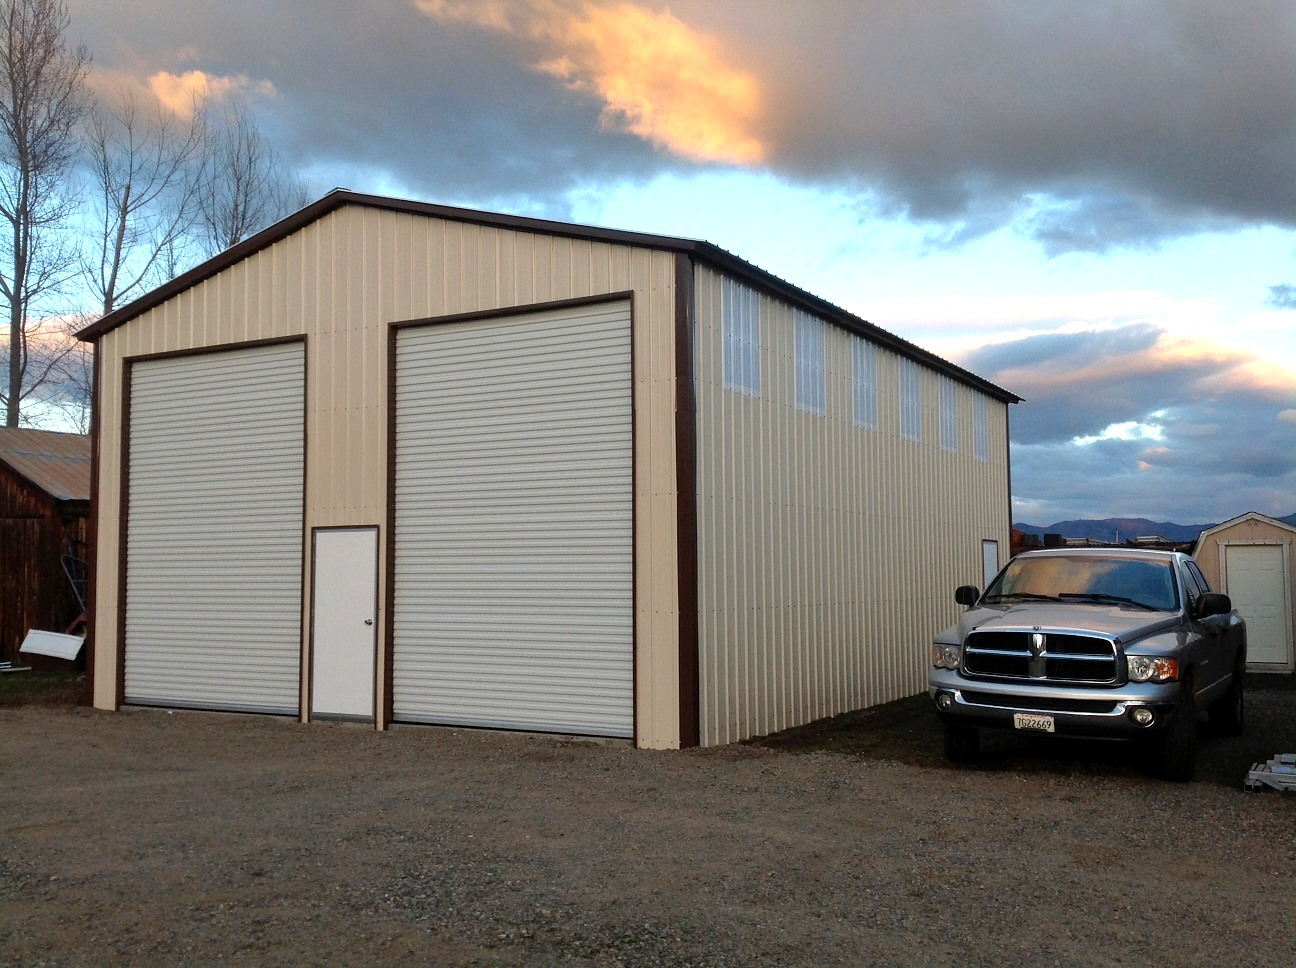 Commercial Steel Garages Inside : Commercial metal buildings auto repair garage workshop